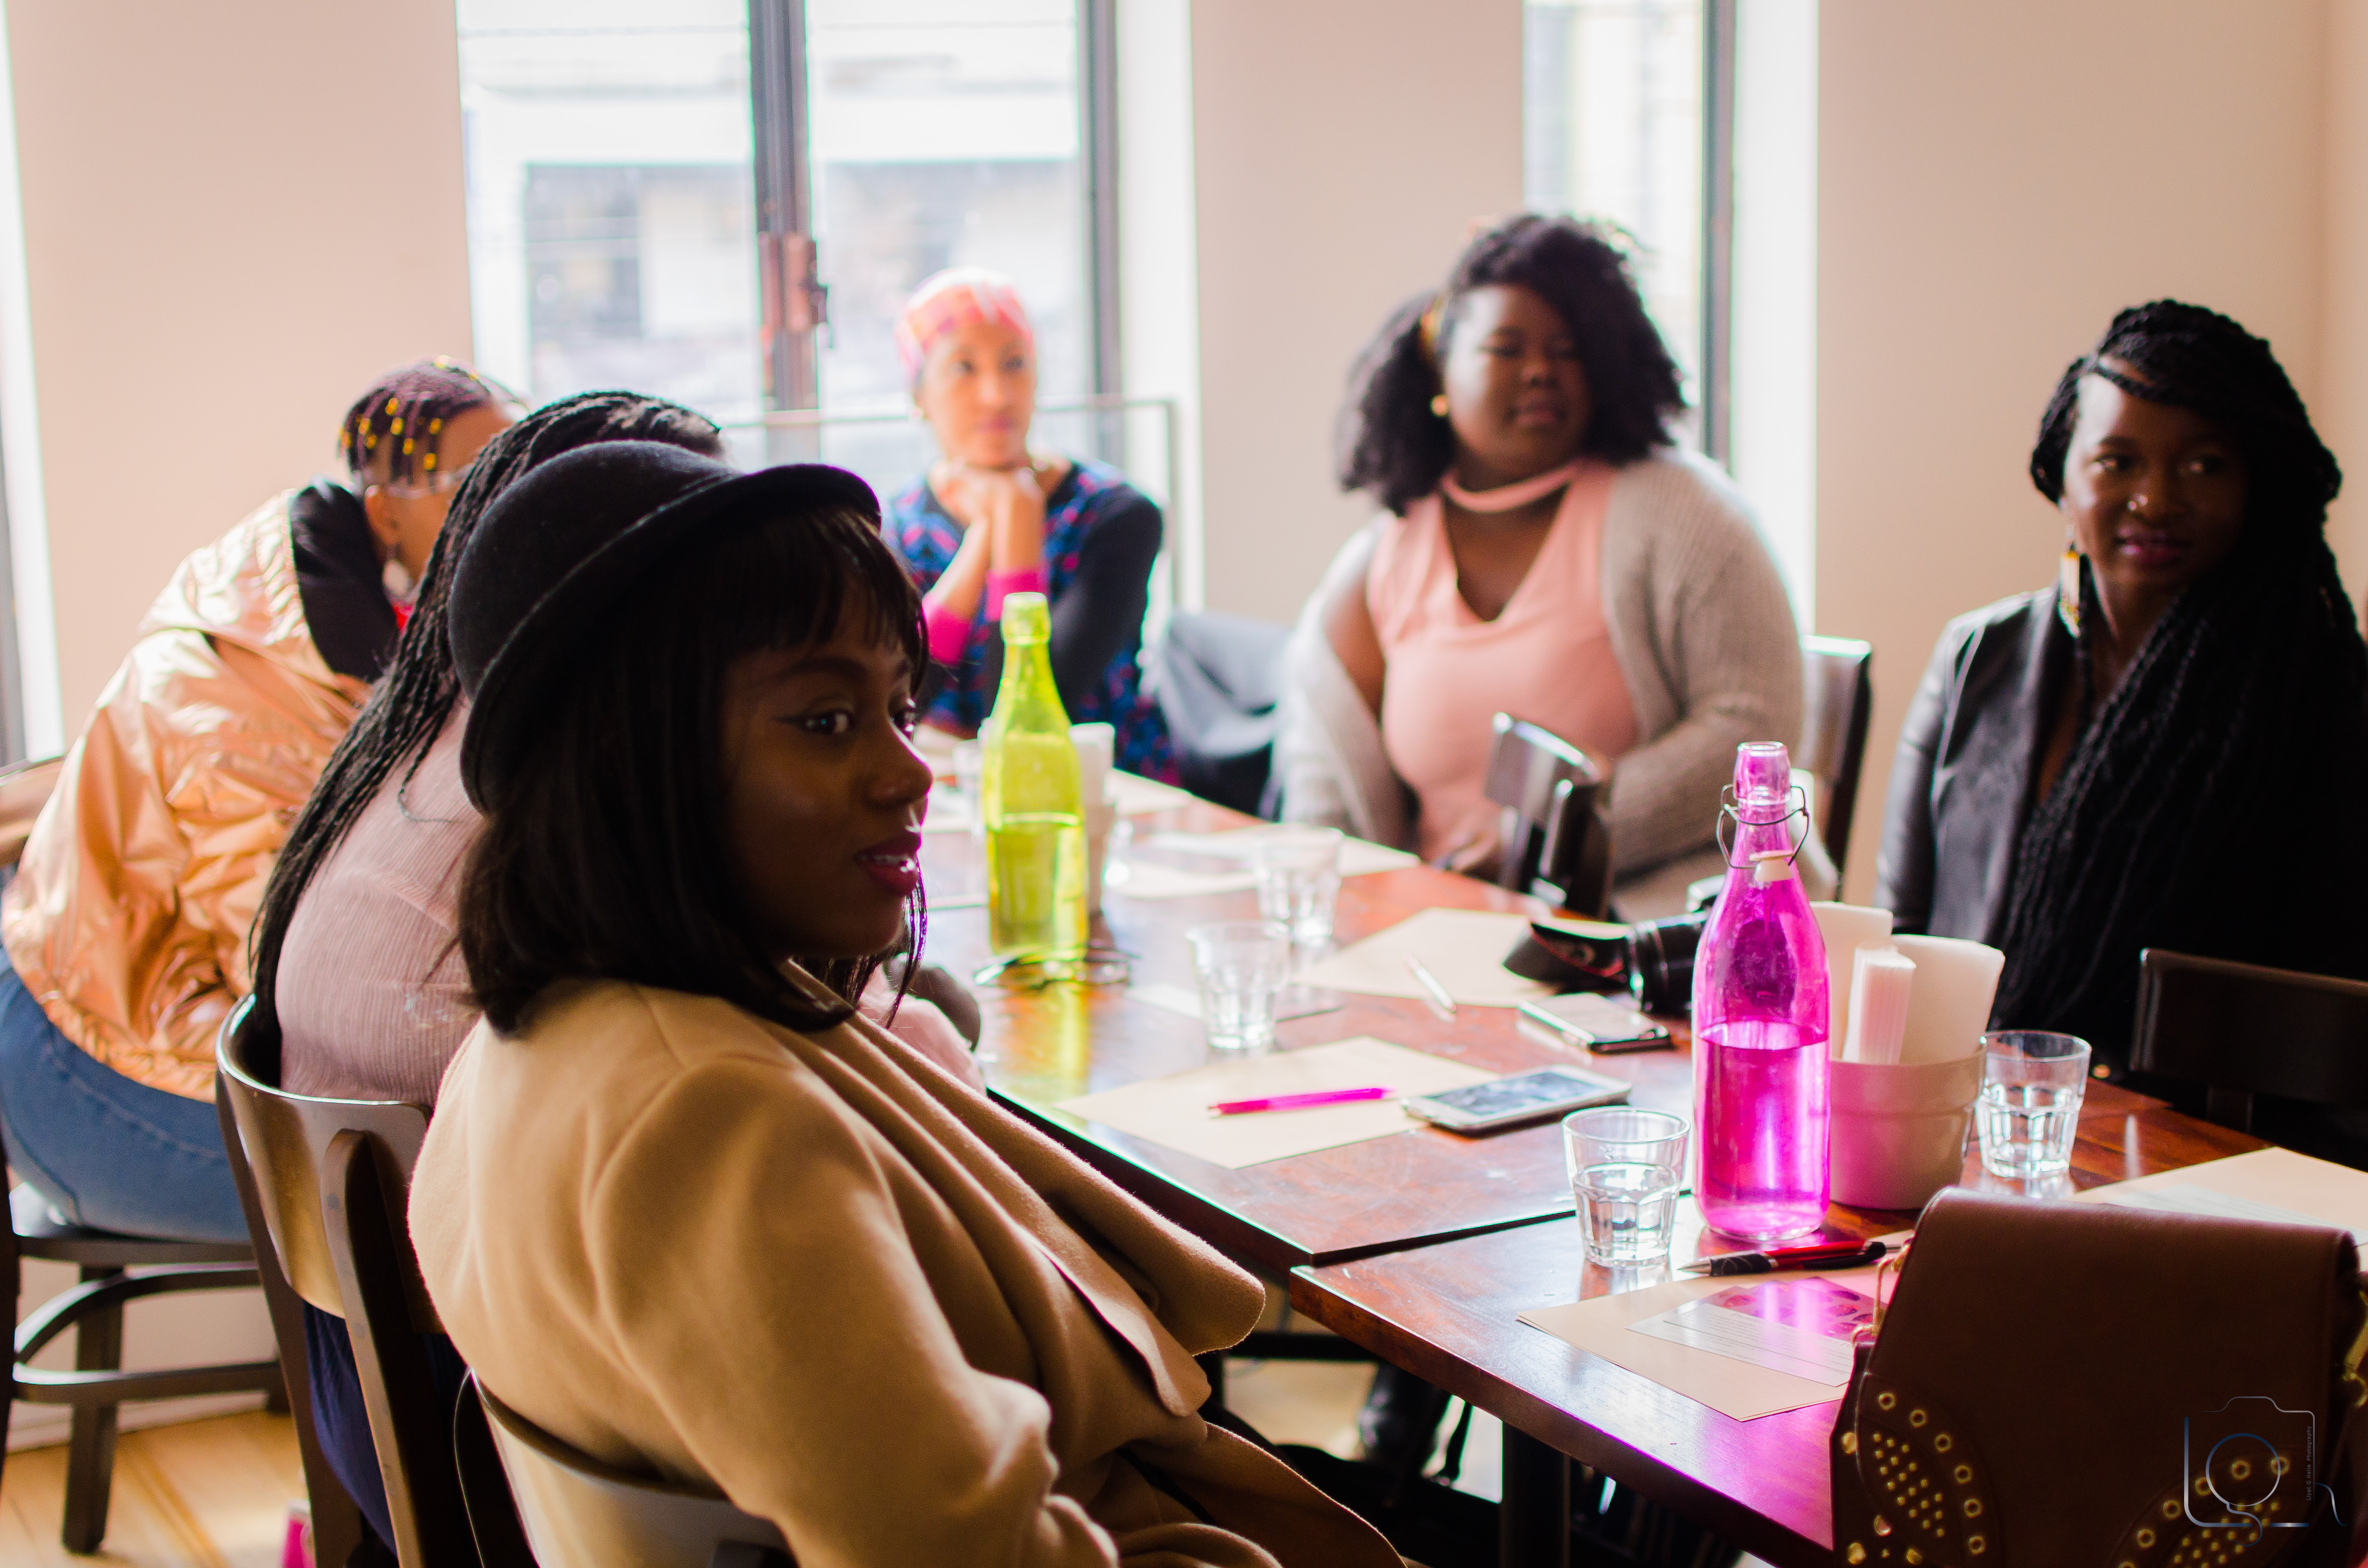 Melbourne Goals Headwraps event Afro African women Australian discussion self care